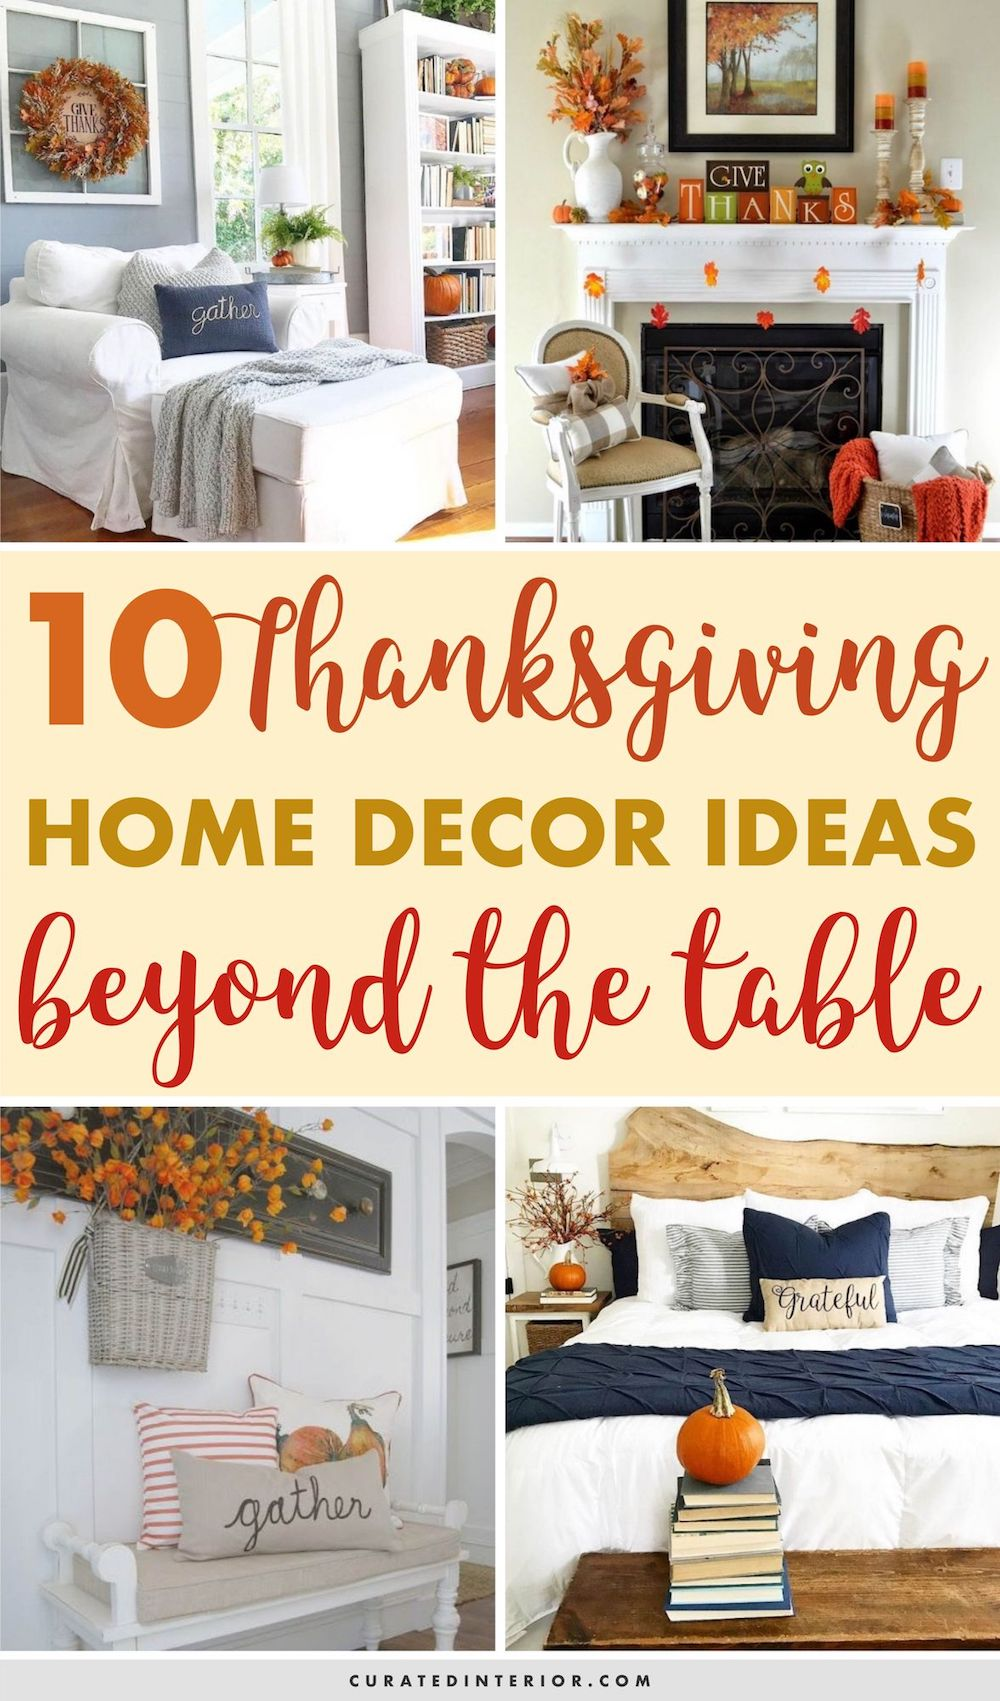 10 Thanksgiving Home Decor Ideas Beyond The Table ThanksgivingDecor ThanksgivingHomeDecor